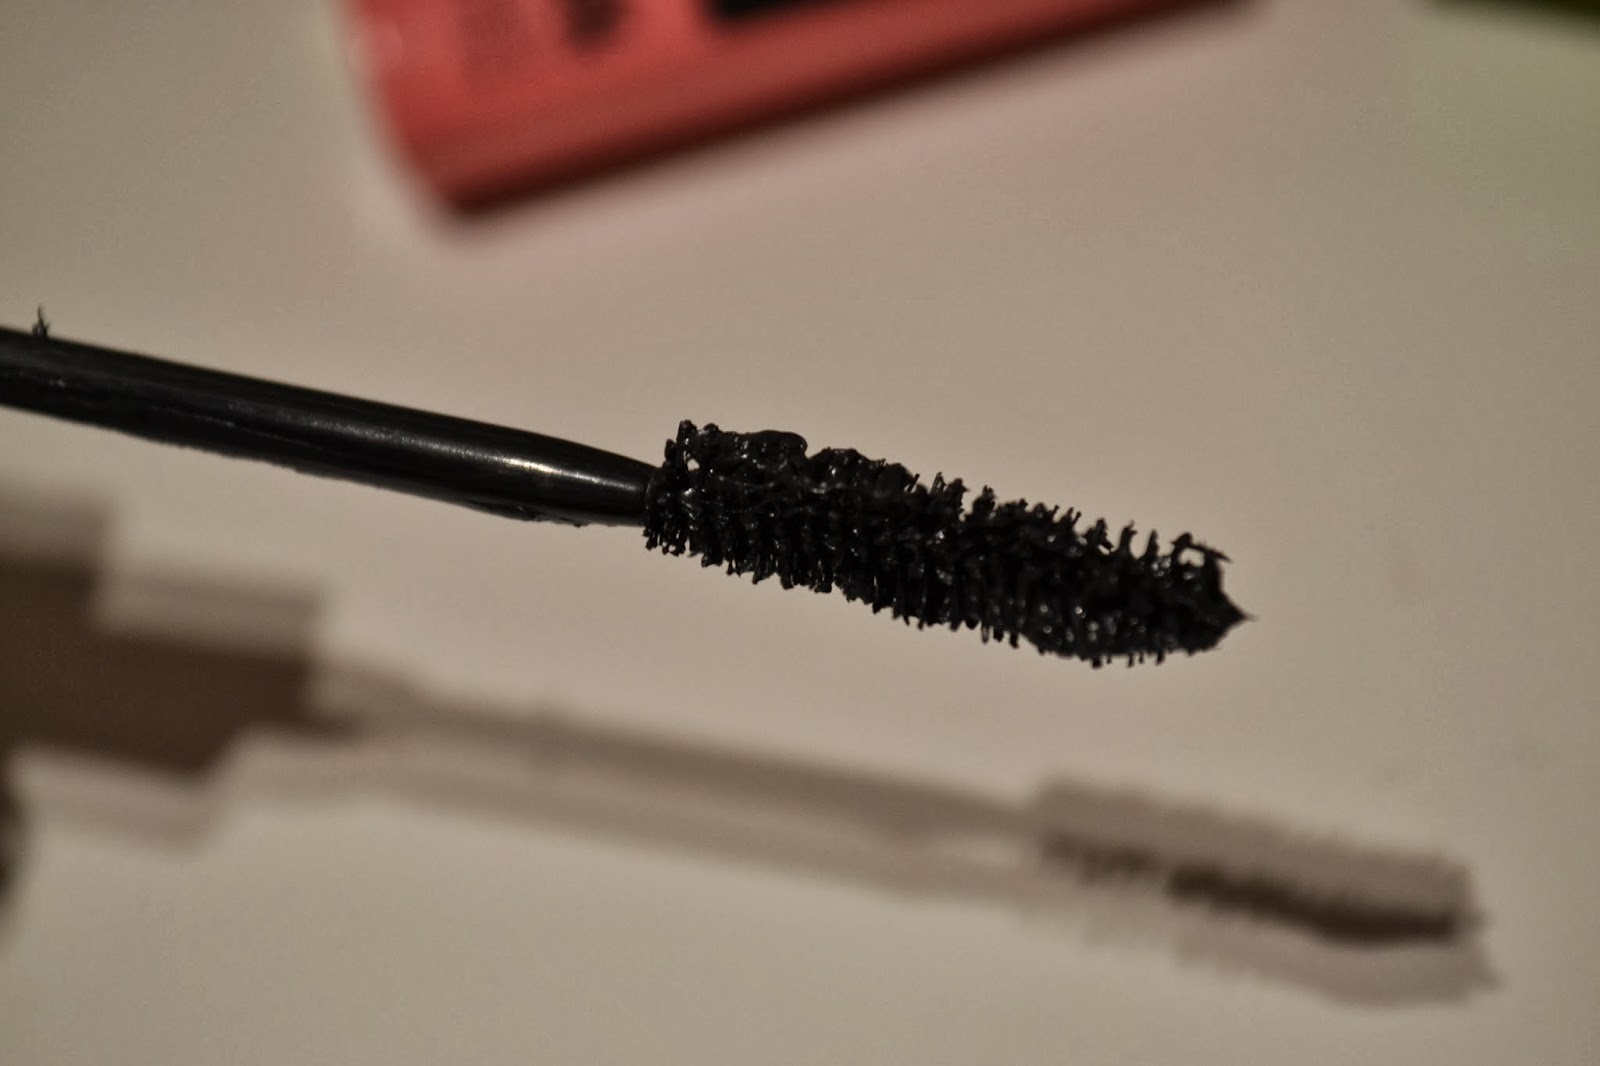 ysl-shocking-mascara-wand